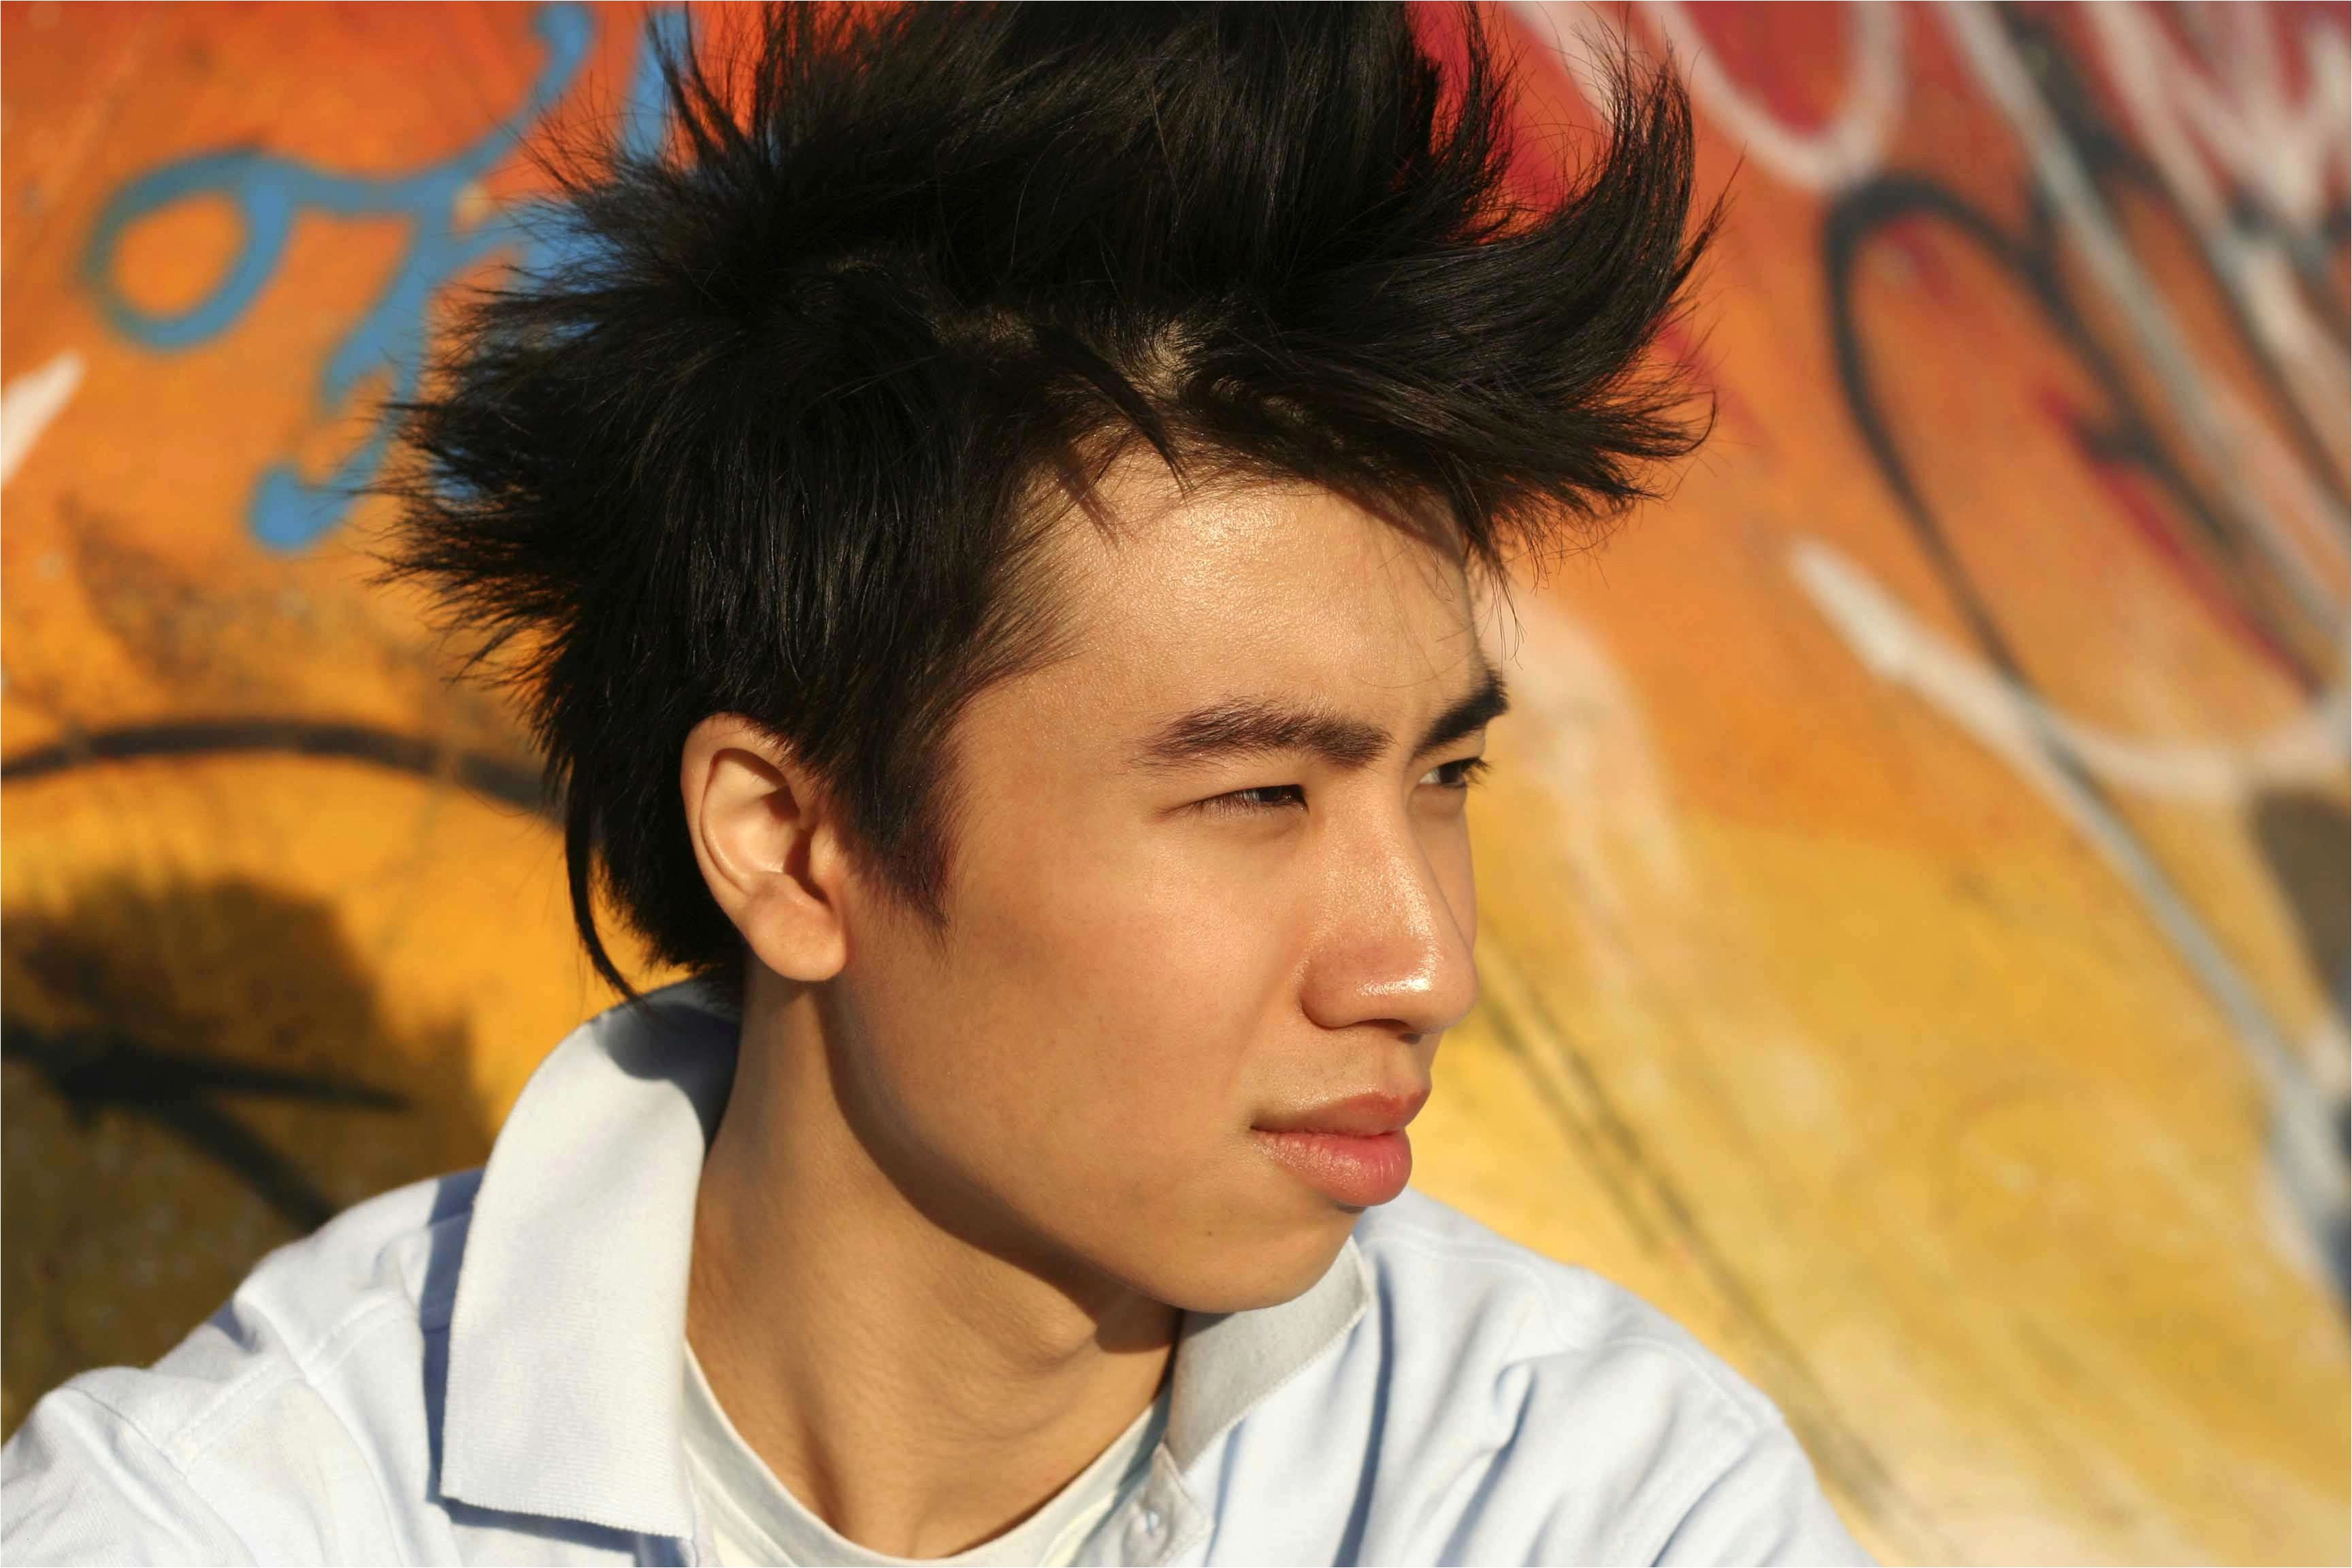 Very Short Spiky Hairstyles Short Spikey Hairstyles Hairstyles And Cuts Fresh